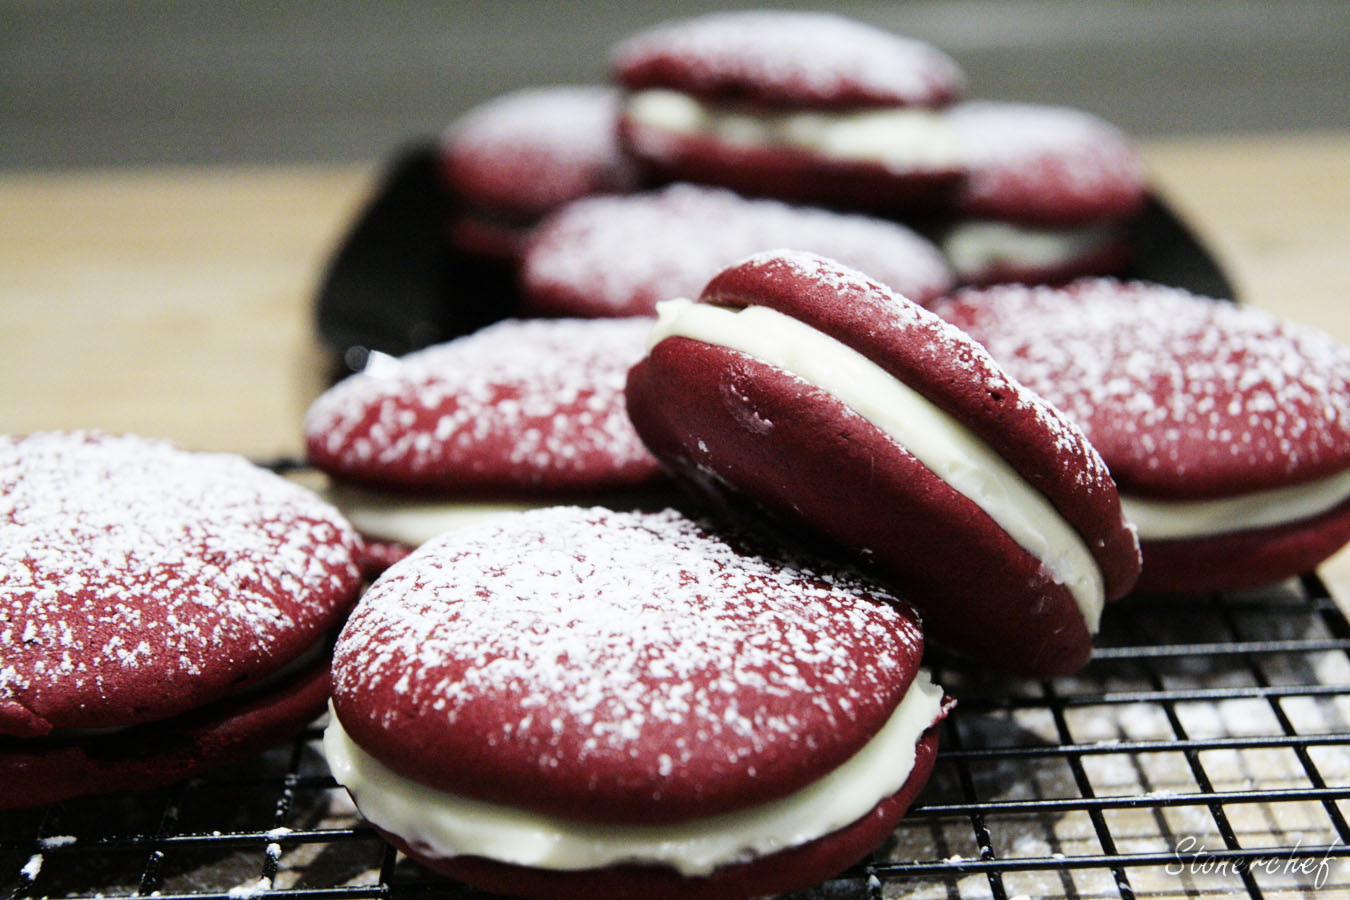 https://www.stonerchef.pl/wp-content/uploads/2017/02/duzo-ciastek-red-velvet-whoopie-pie.jpg